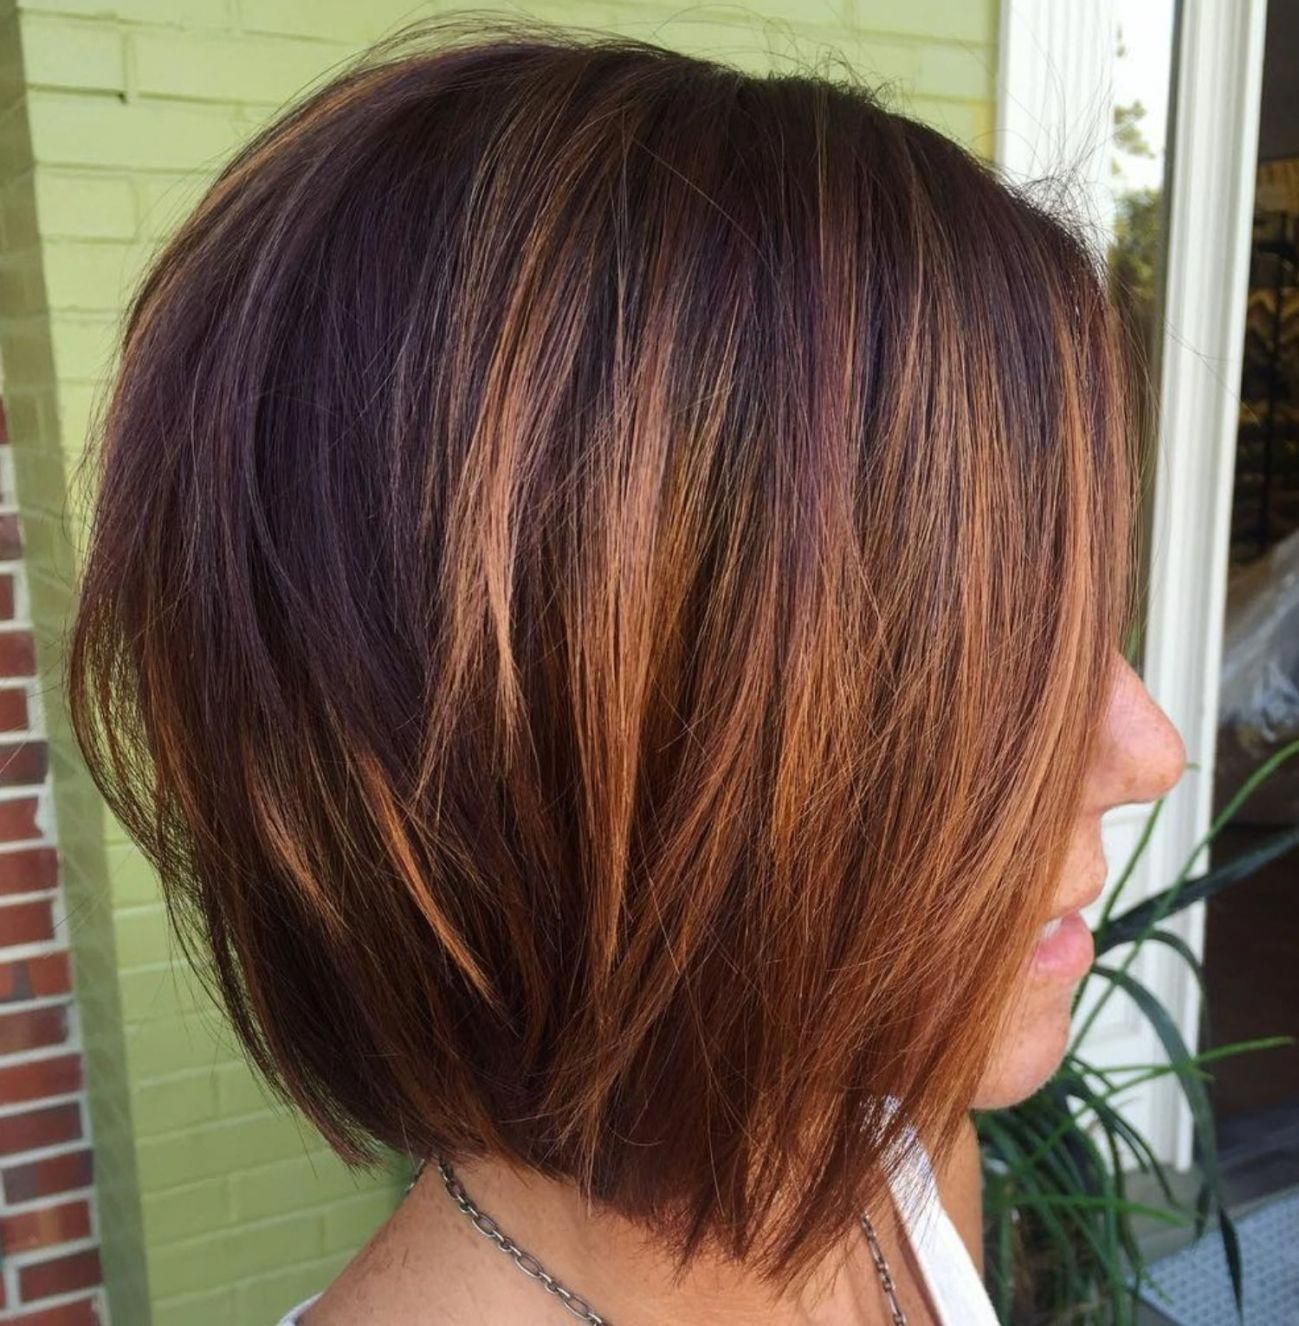 Burgundy and Copper Balayage Bob for Brunettes #bobhairstyles